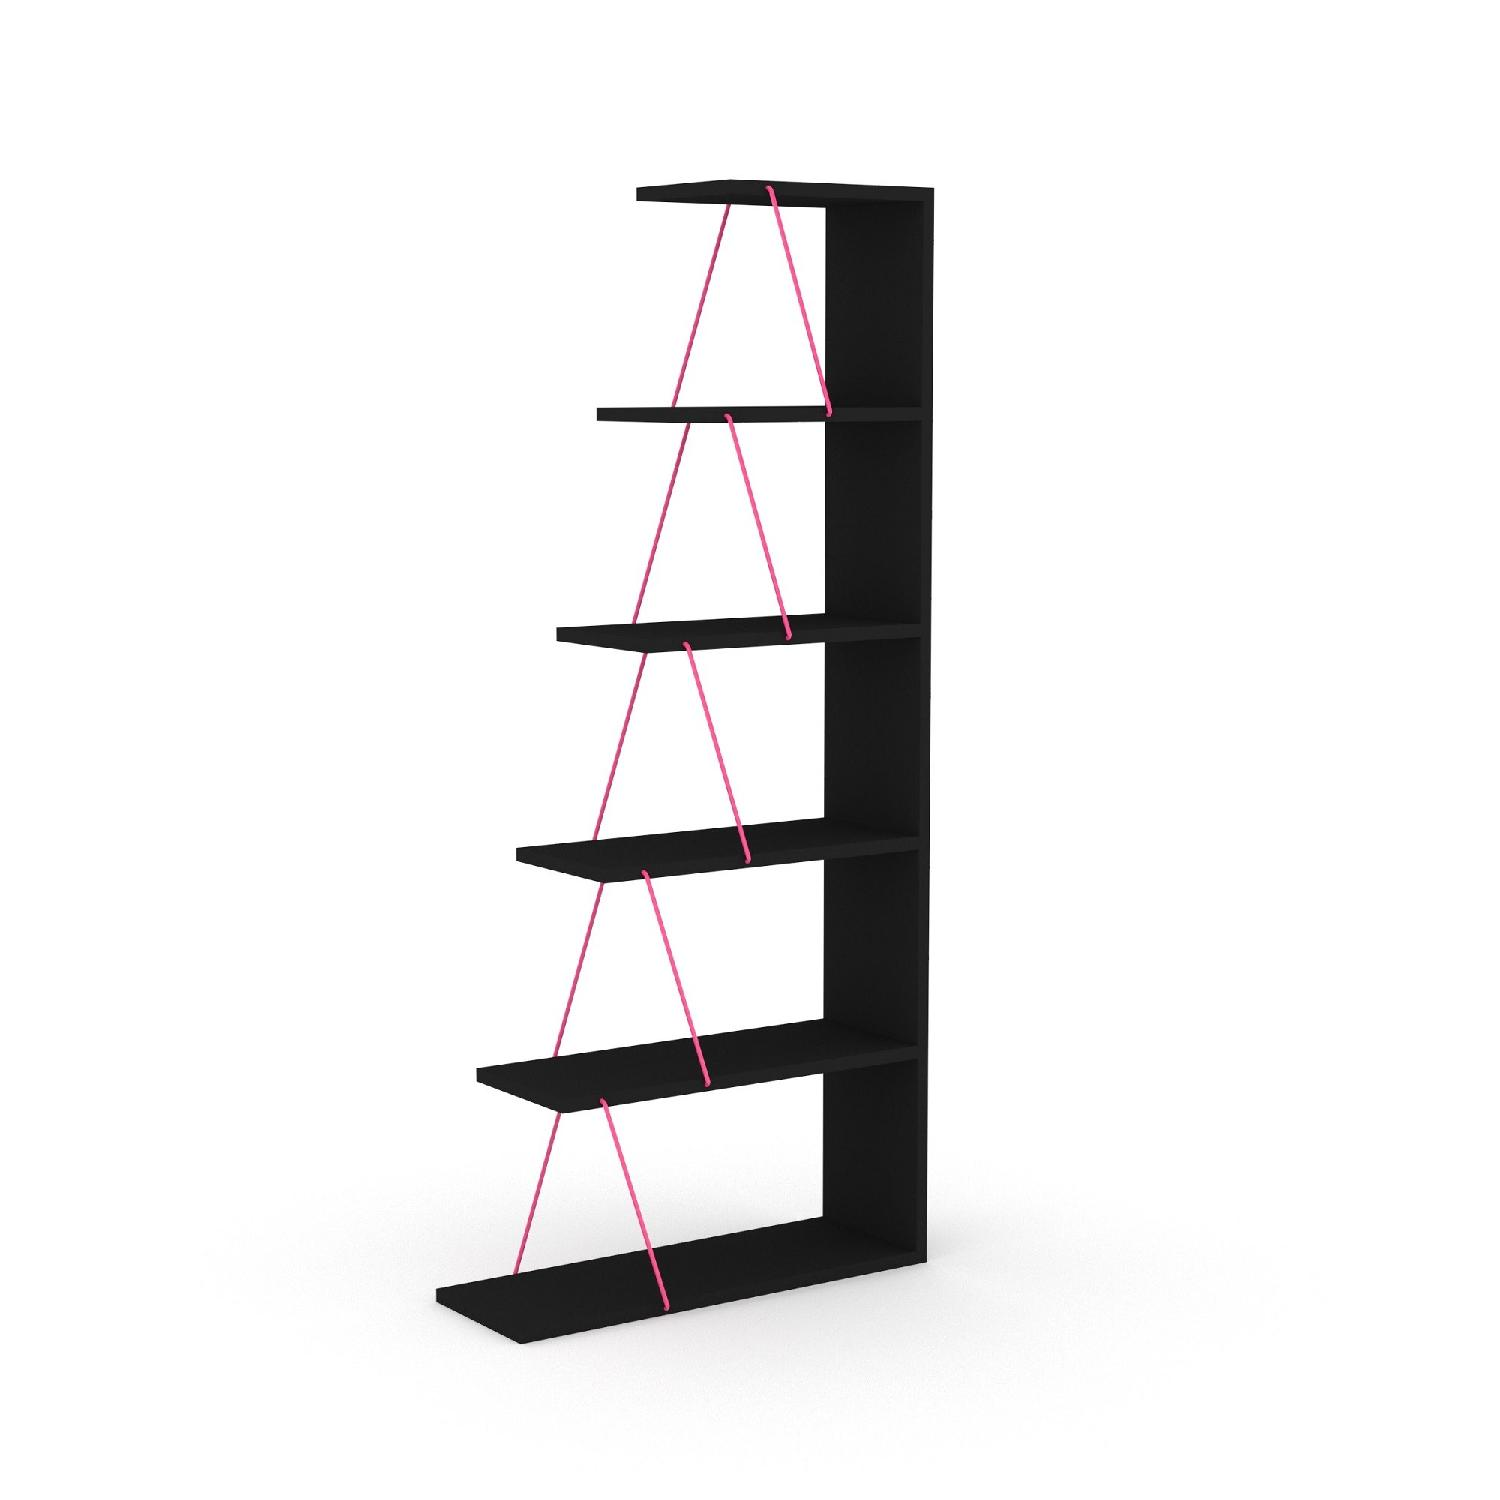 Tamada Trading Orderly Bookshelf in Black & Pink